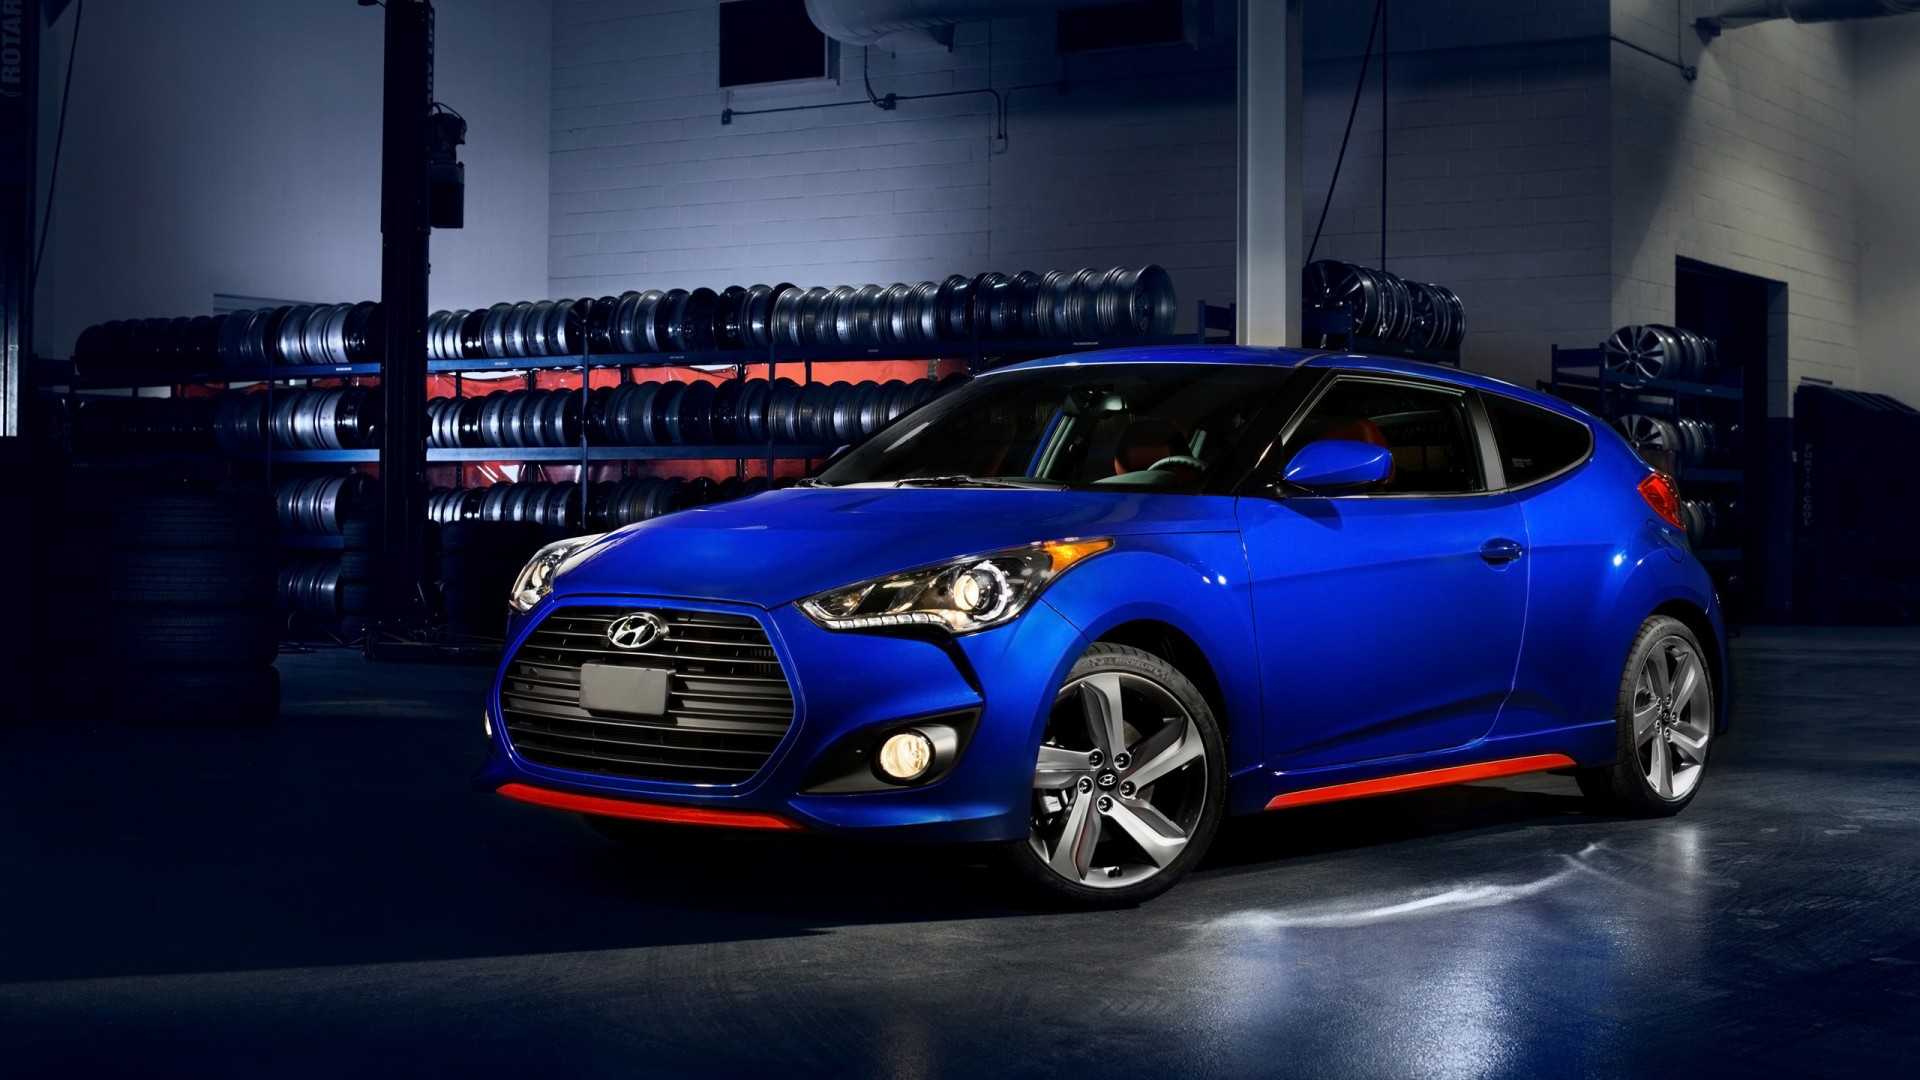 2015 hyundai veloster turbo r spec wallpaper hd car wallpapers id 4887. Black Bedroom Furniture Sets. Home Design Ideas